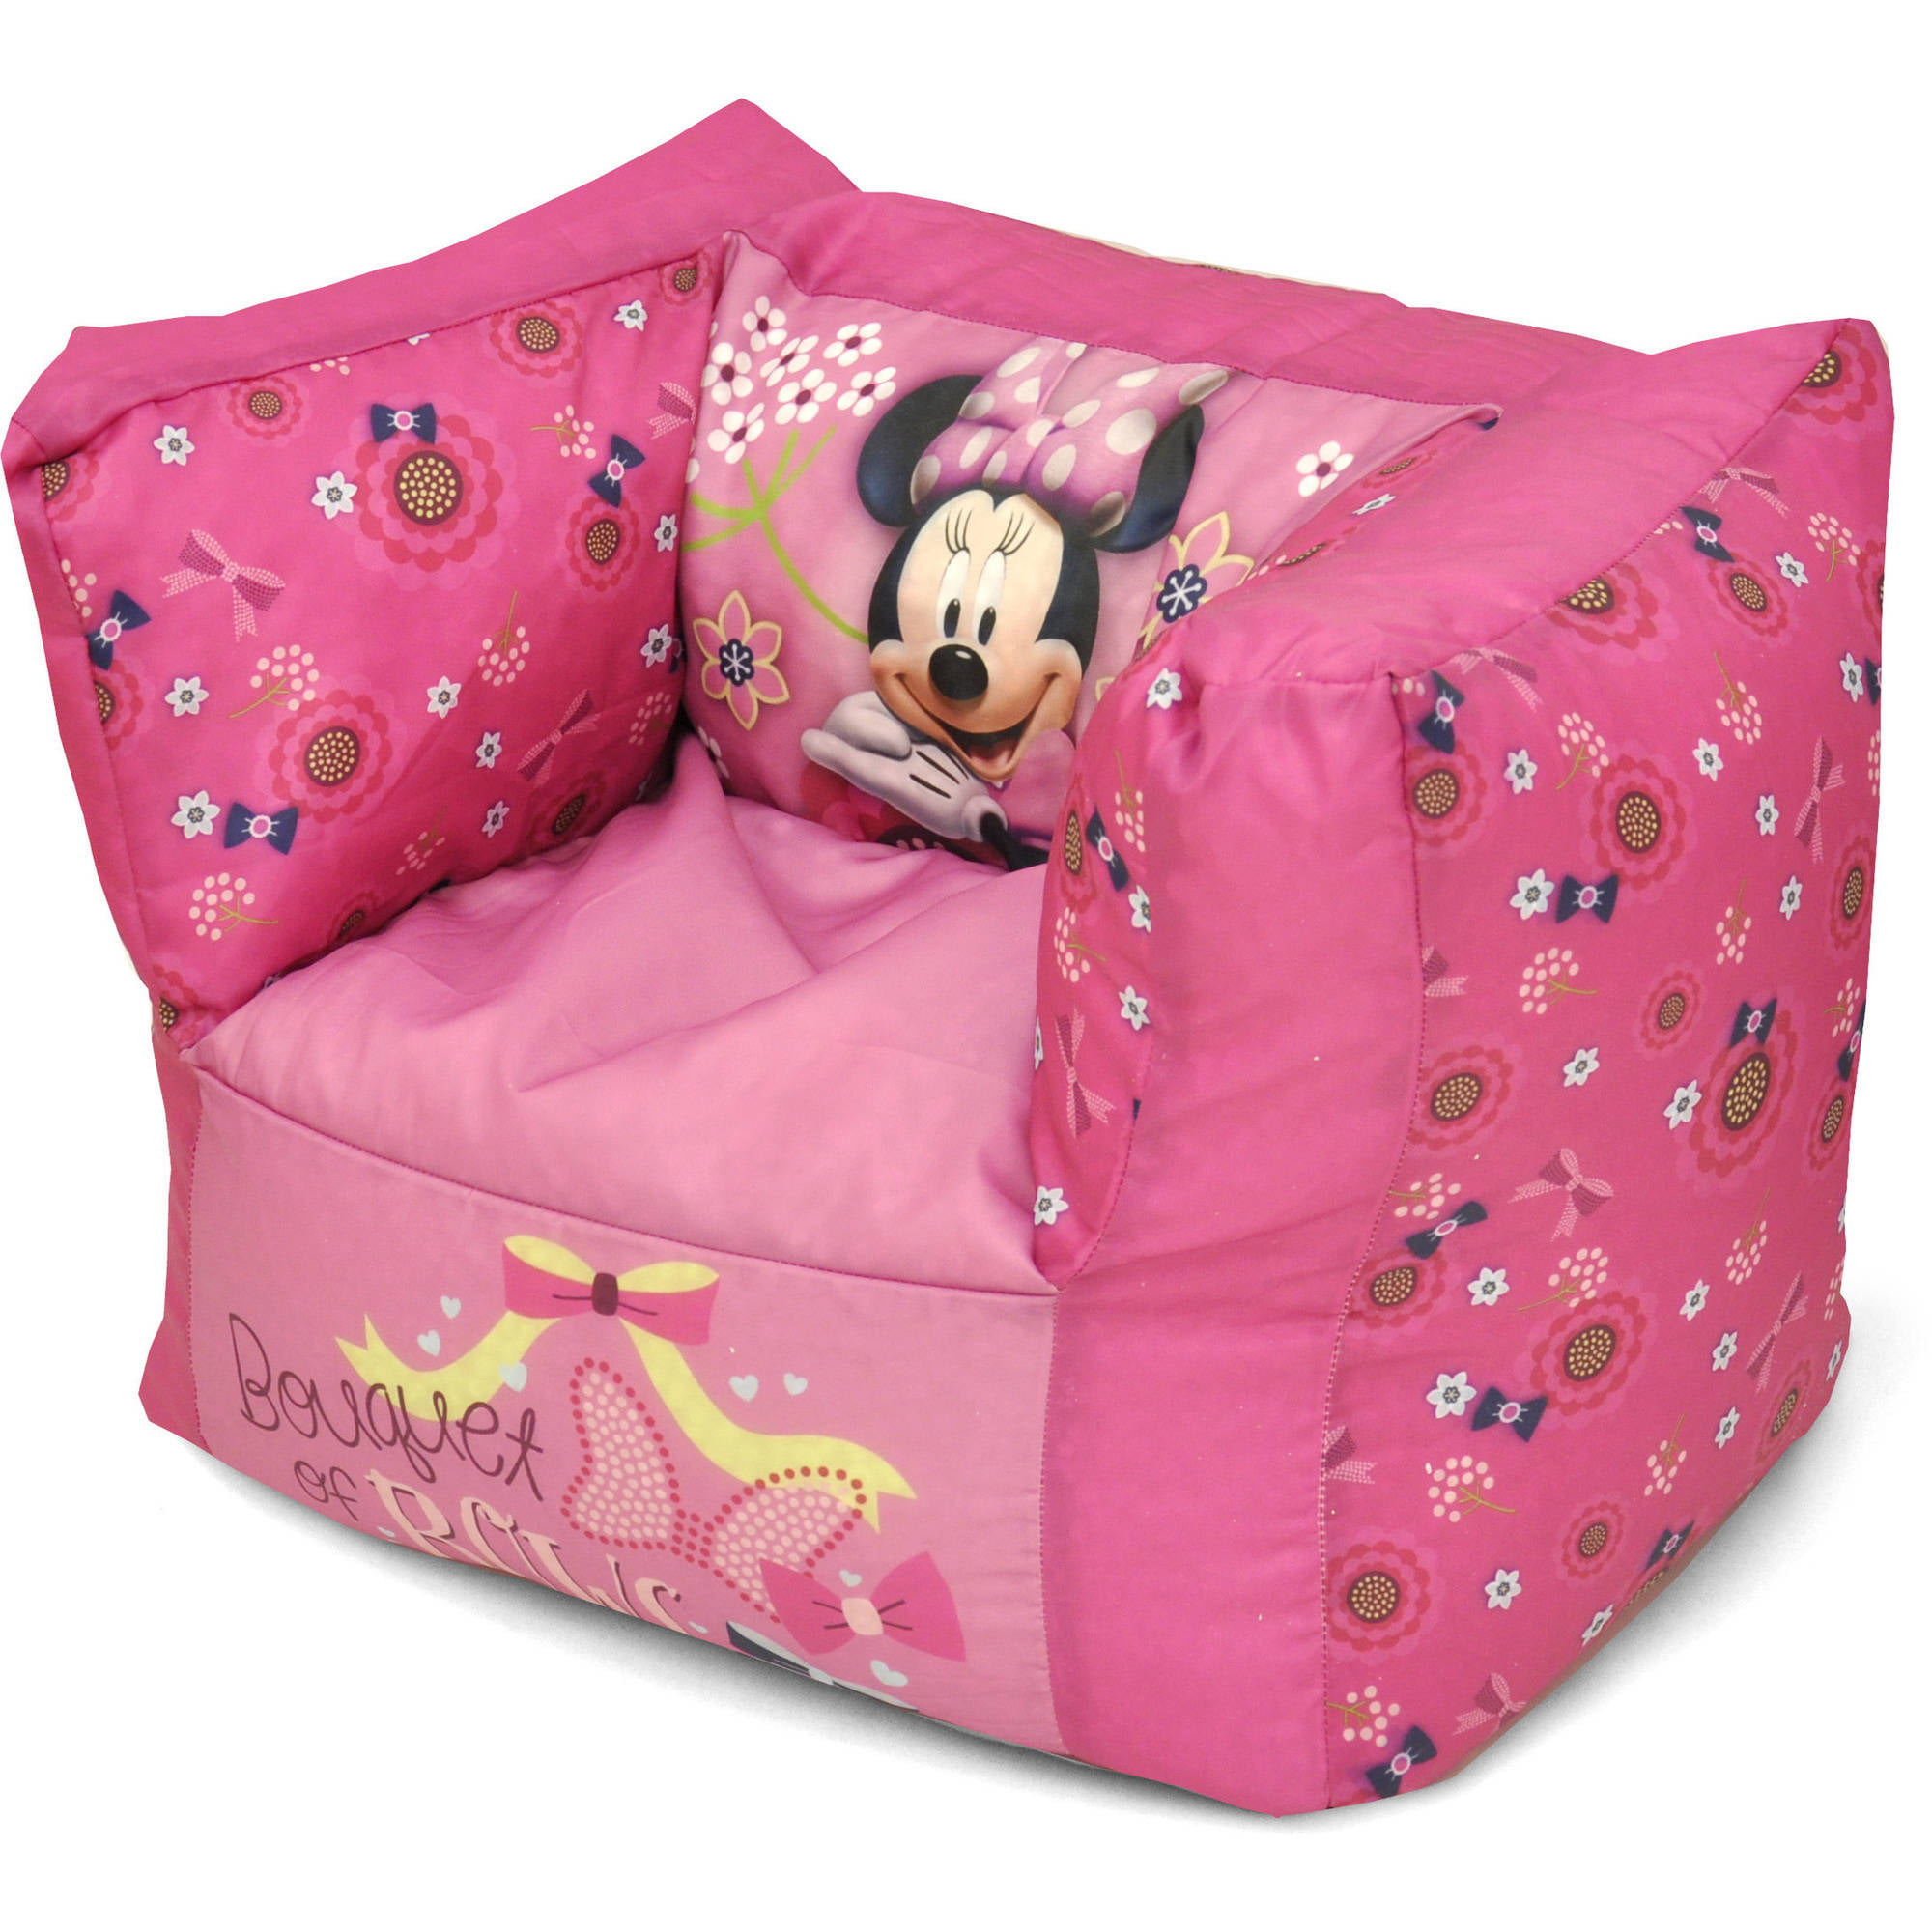 Minnie Mouse Square Beanbag Chair by Disney